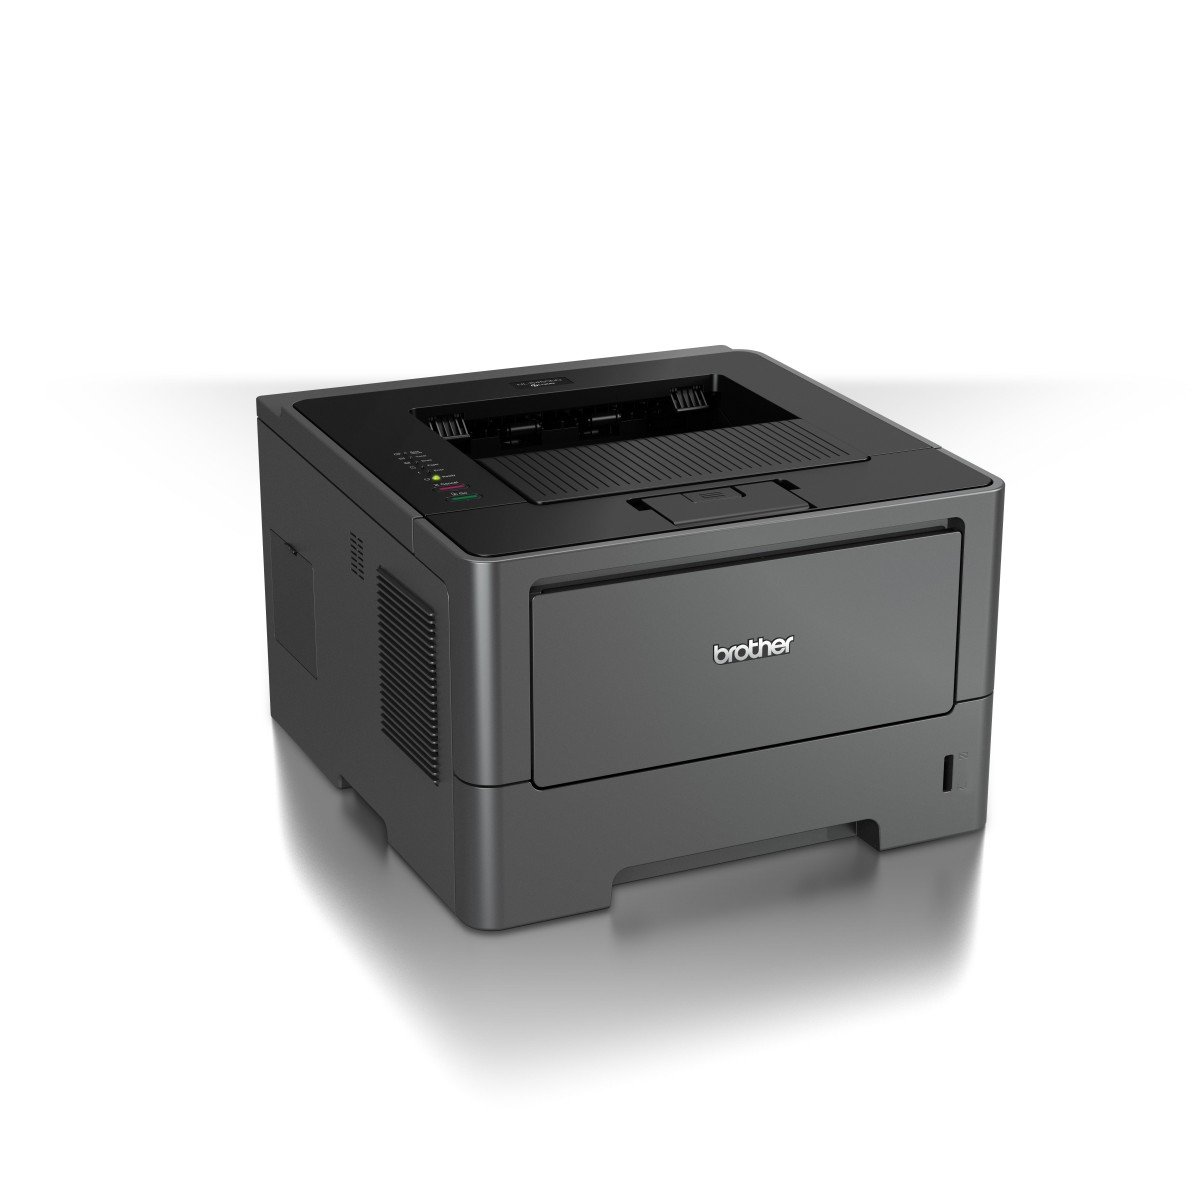 BROTHER HL 5450DN DRIVER WINDOWS XP